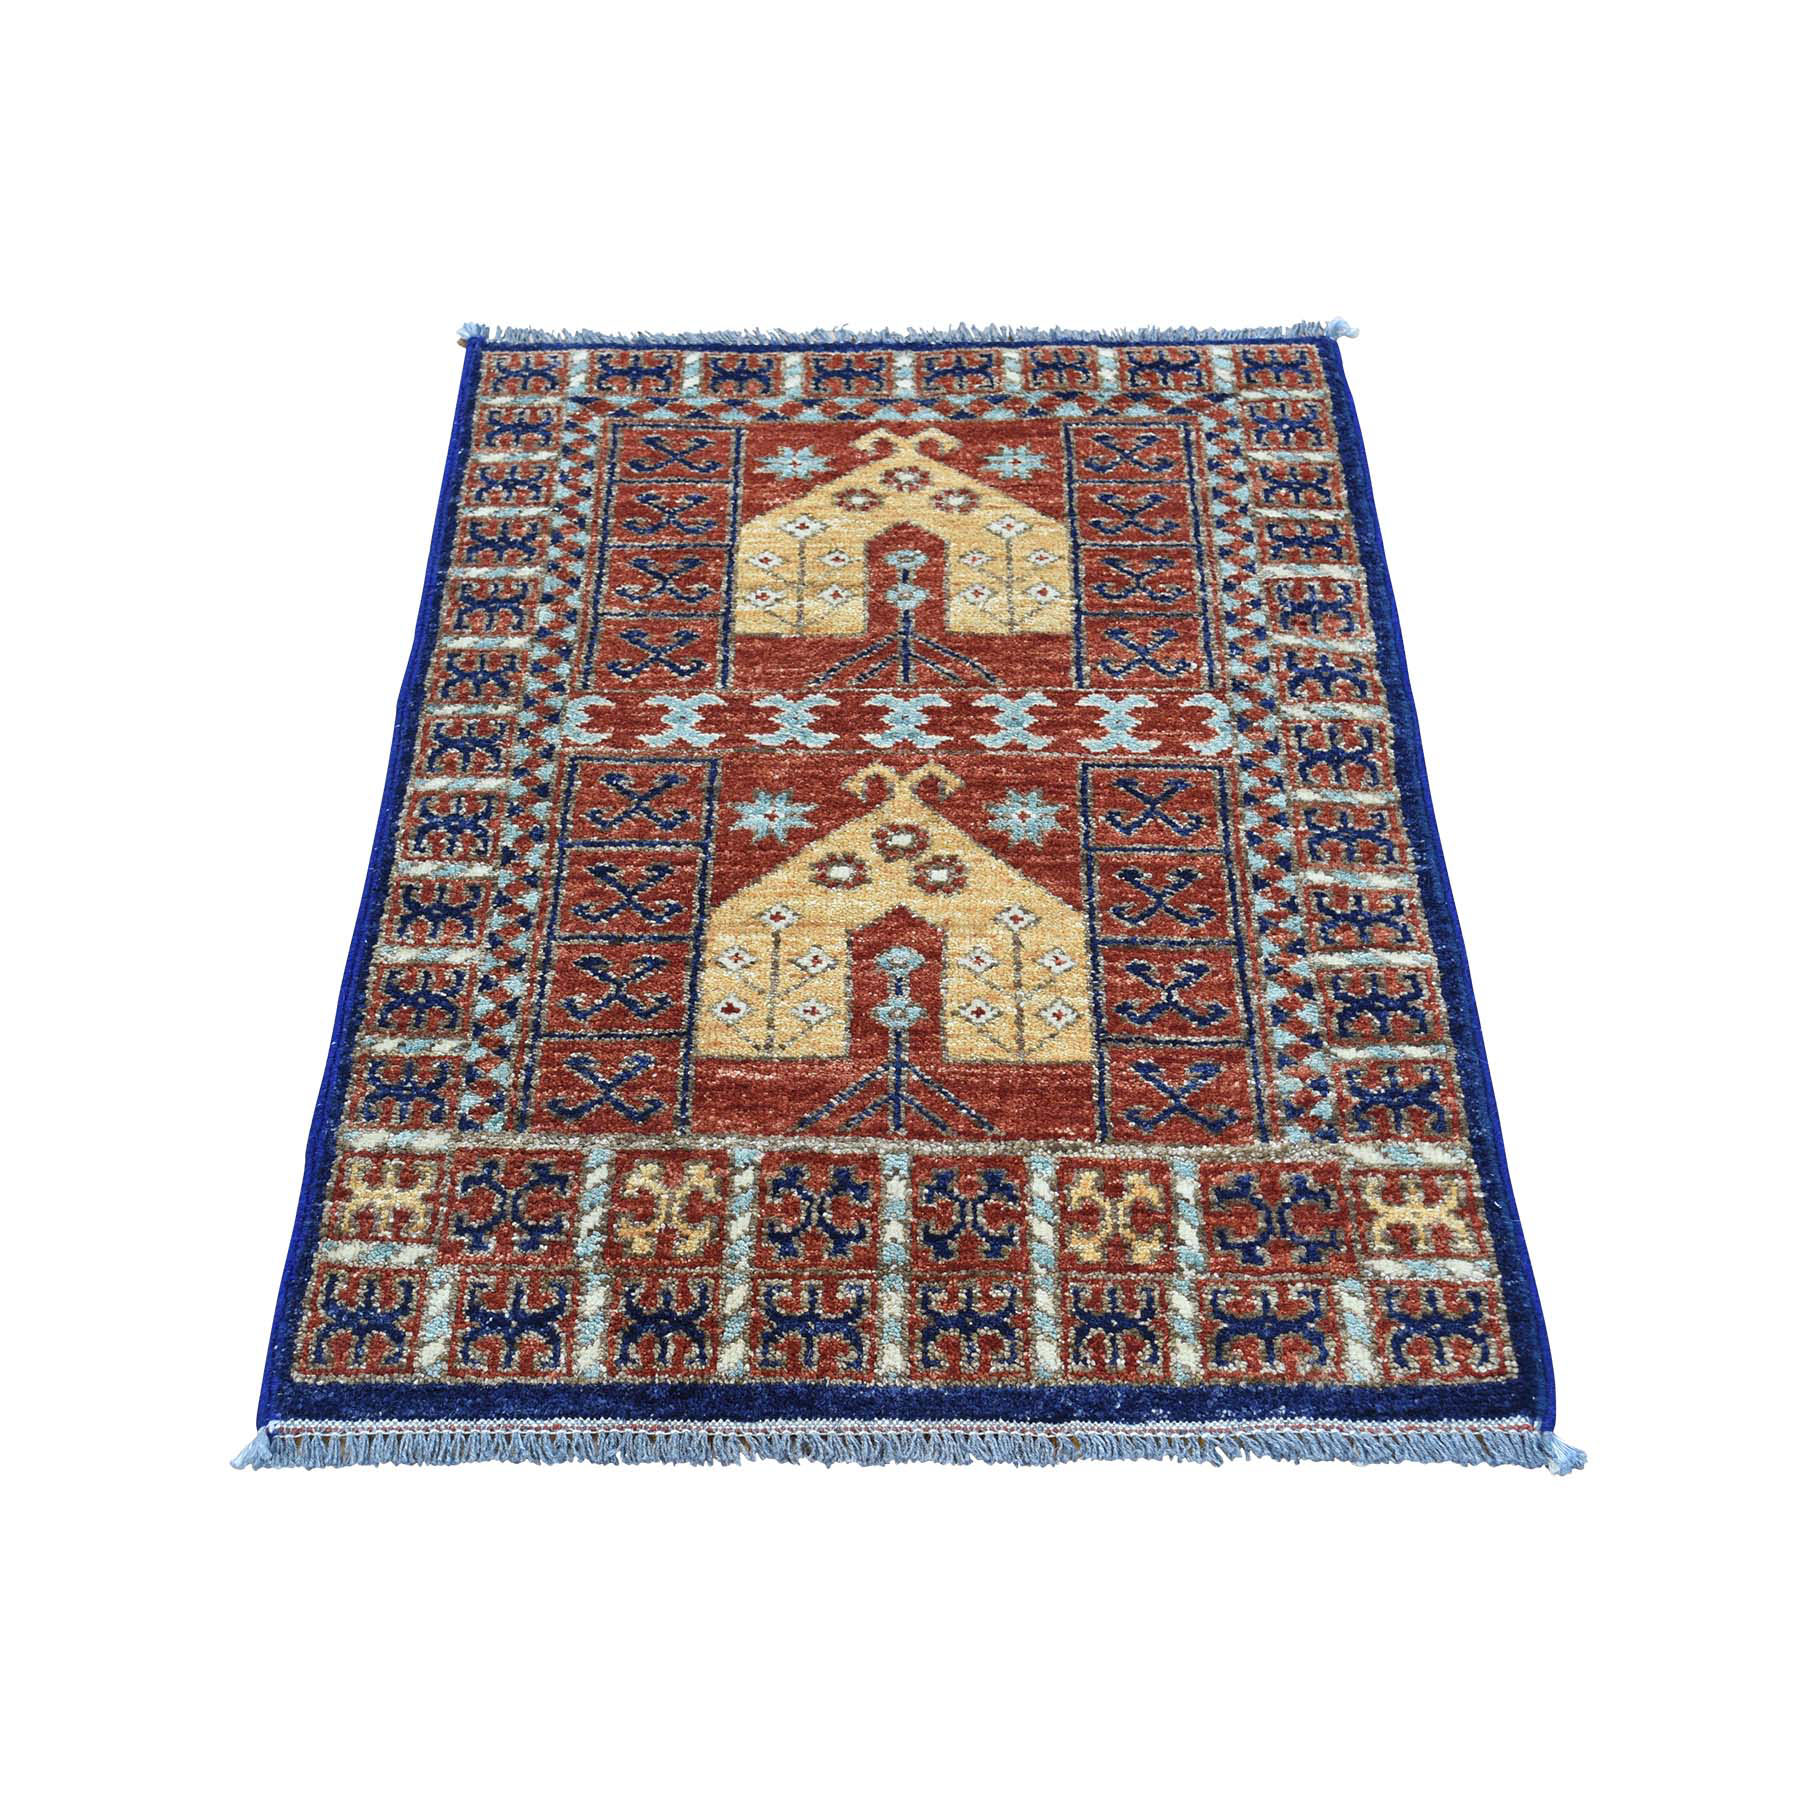 "2'X3'2"" 100 Percent Wool Afghan Ersari Hand-Knotted Prayer Design Rug moaca7d8"